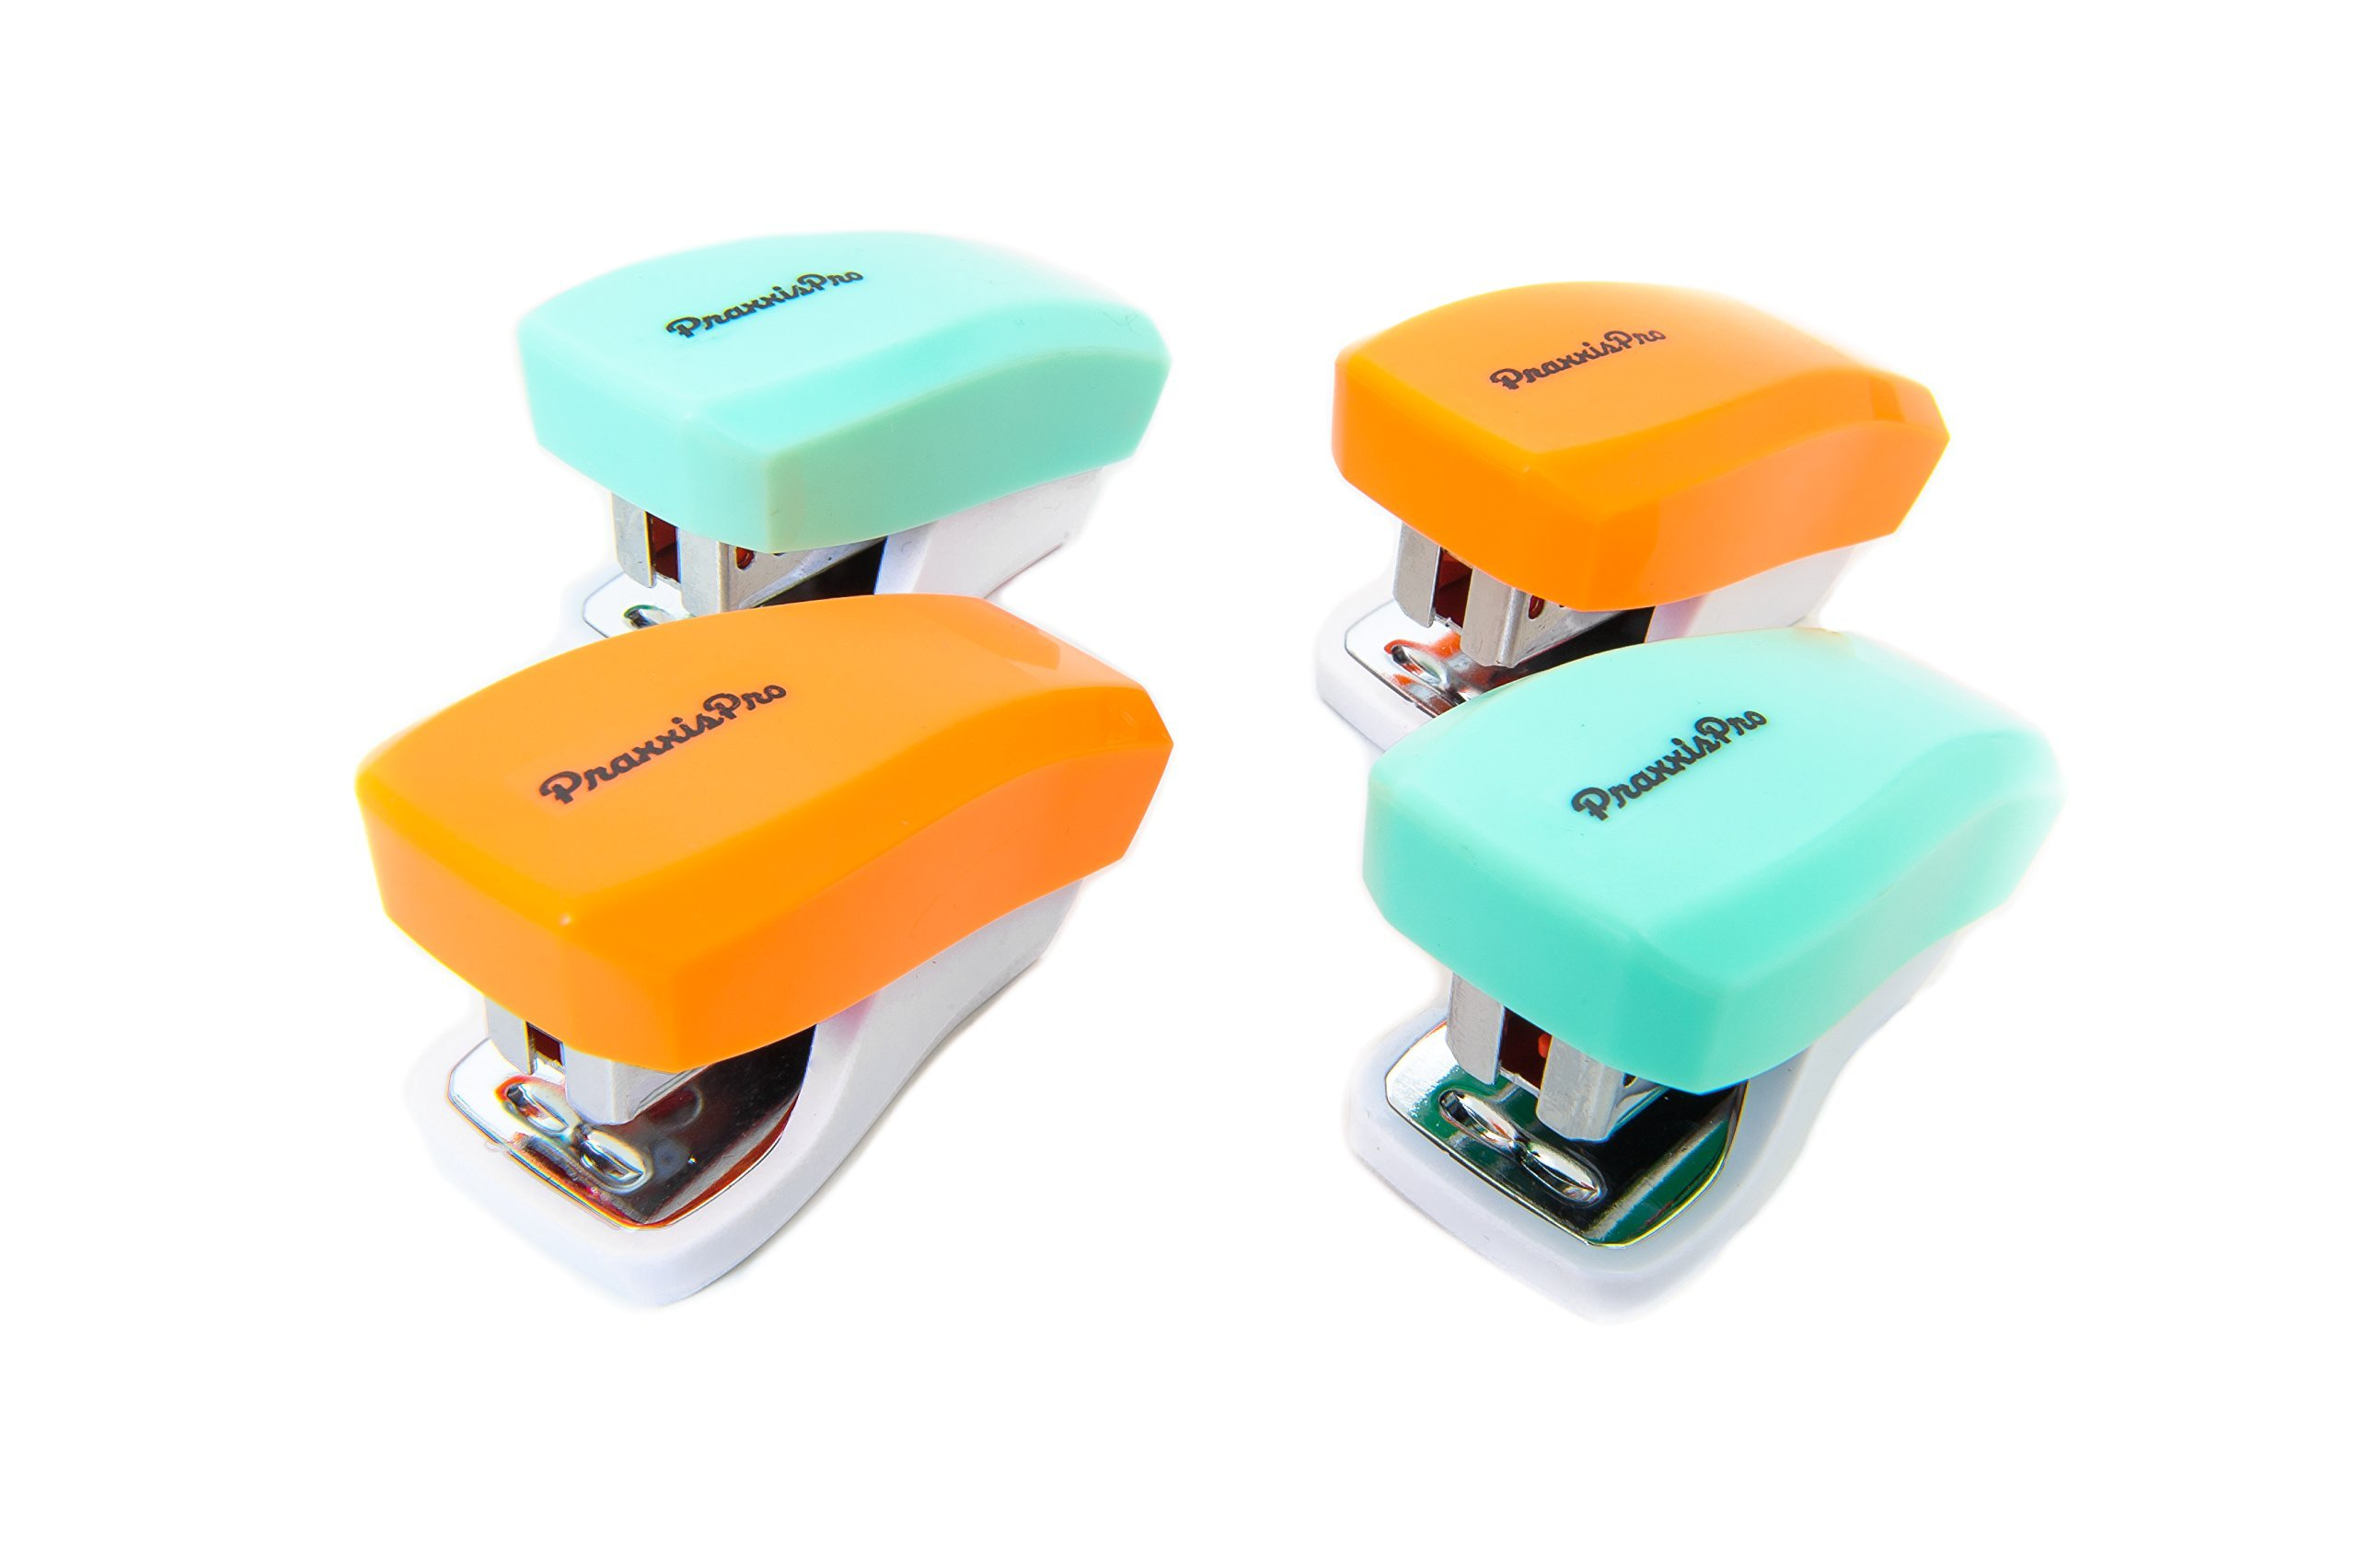 PraxxisPro Stapler Set, Mini Staplers, Built-In Staple Remover, Set of 4 (Creamsicle and Daiquiri Ice)